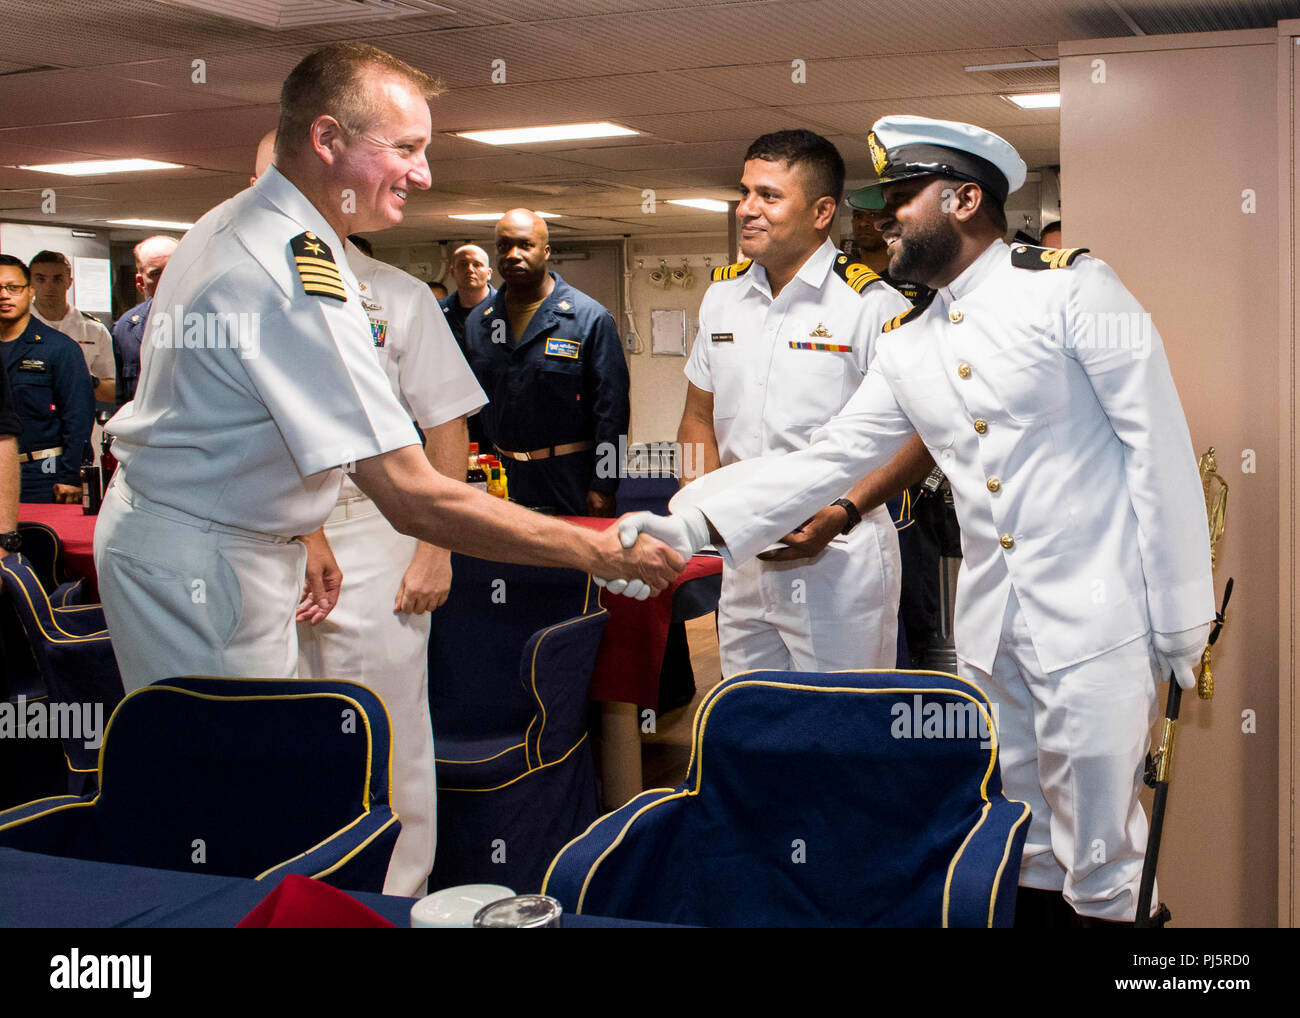 180824-N-PH222-0574 TRINCOMALEE, SRI LANKA (August 24, 2018) Capt. Dennis Jacko, from Sayreville, N.J., commanding officer of San Antonio-class amphibious transport dock USS Anchorage (LPD 23) greets Sri Lankan Navy officials in the wardroom during a scheduled port visit in Trincomalee, Sri Lanka during a regularly scheduled deployment of the Essex Amphibious Ready Group (ARG) and 13th Marine Expeditionary Unit (MEU). Anchorage and the embarked Marines of the 13th MEU are conducting a theater security cooperation exercise with the Sri Lankan Navy and the Navy Marines. Part of a growing U.S.-Sr - Stock Image